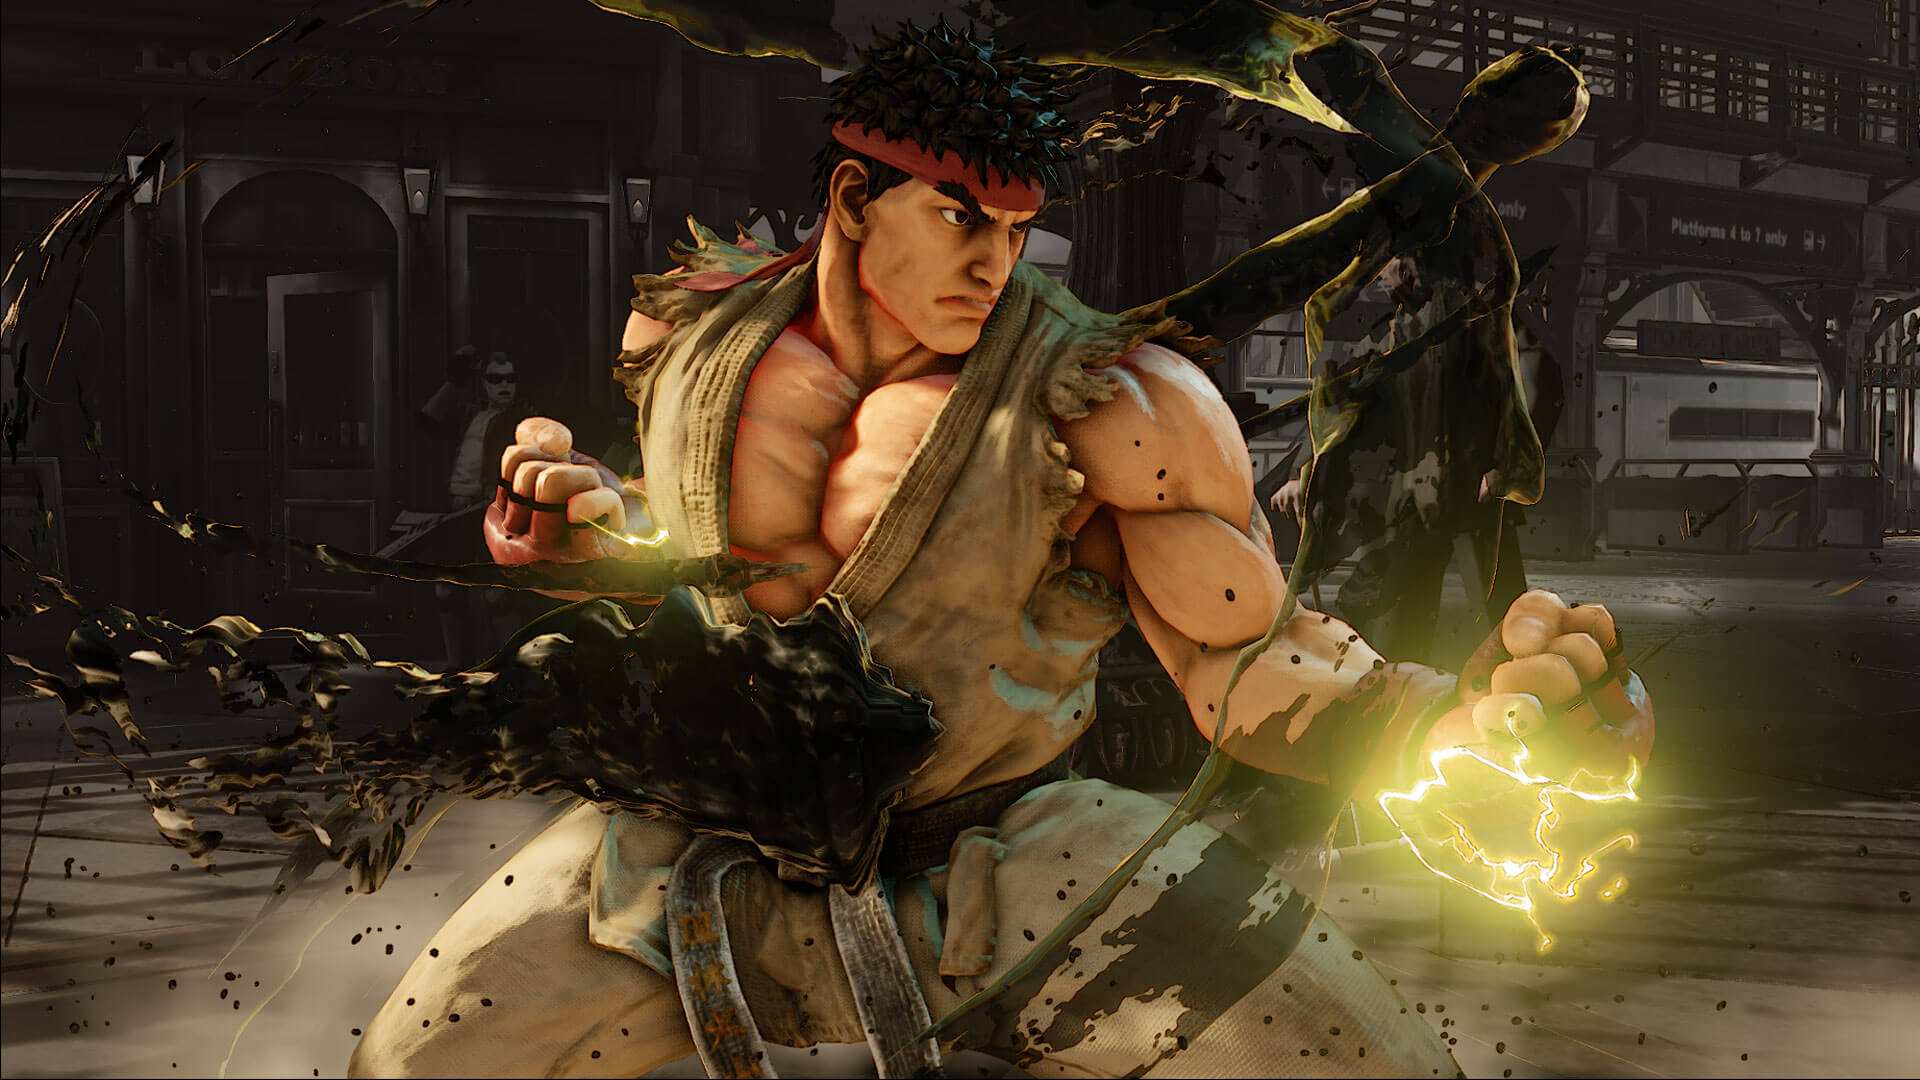 Happy Birthday, Ryu!